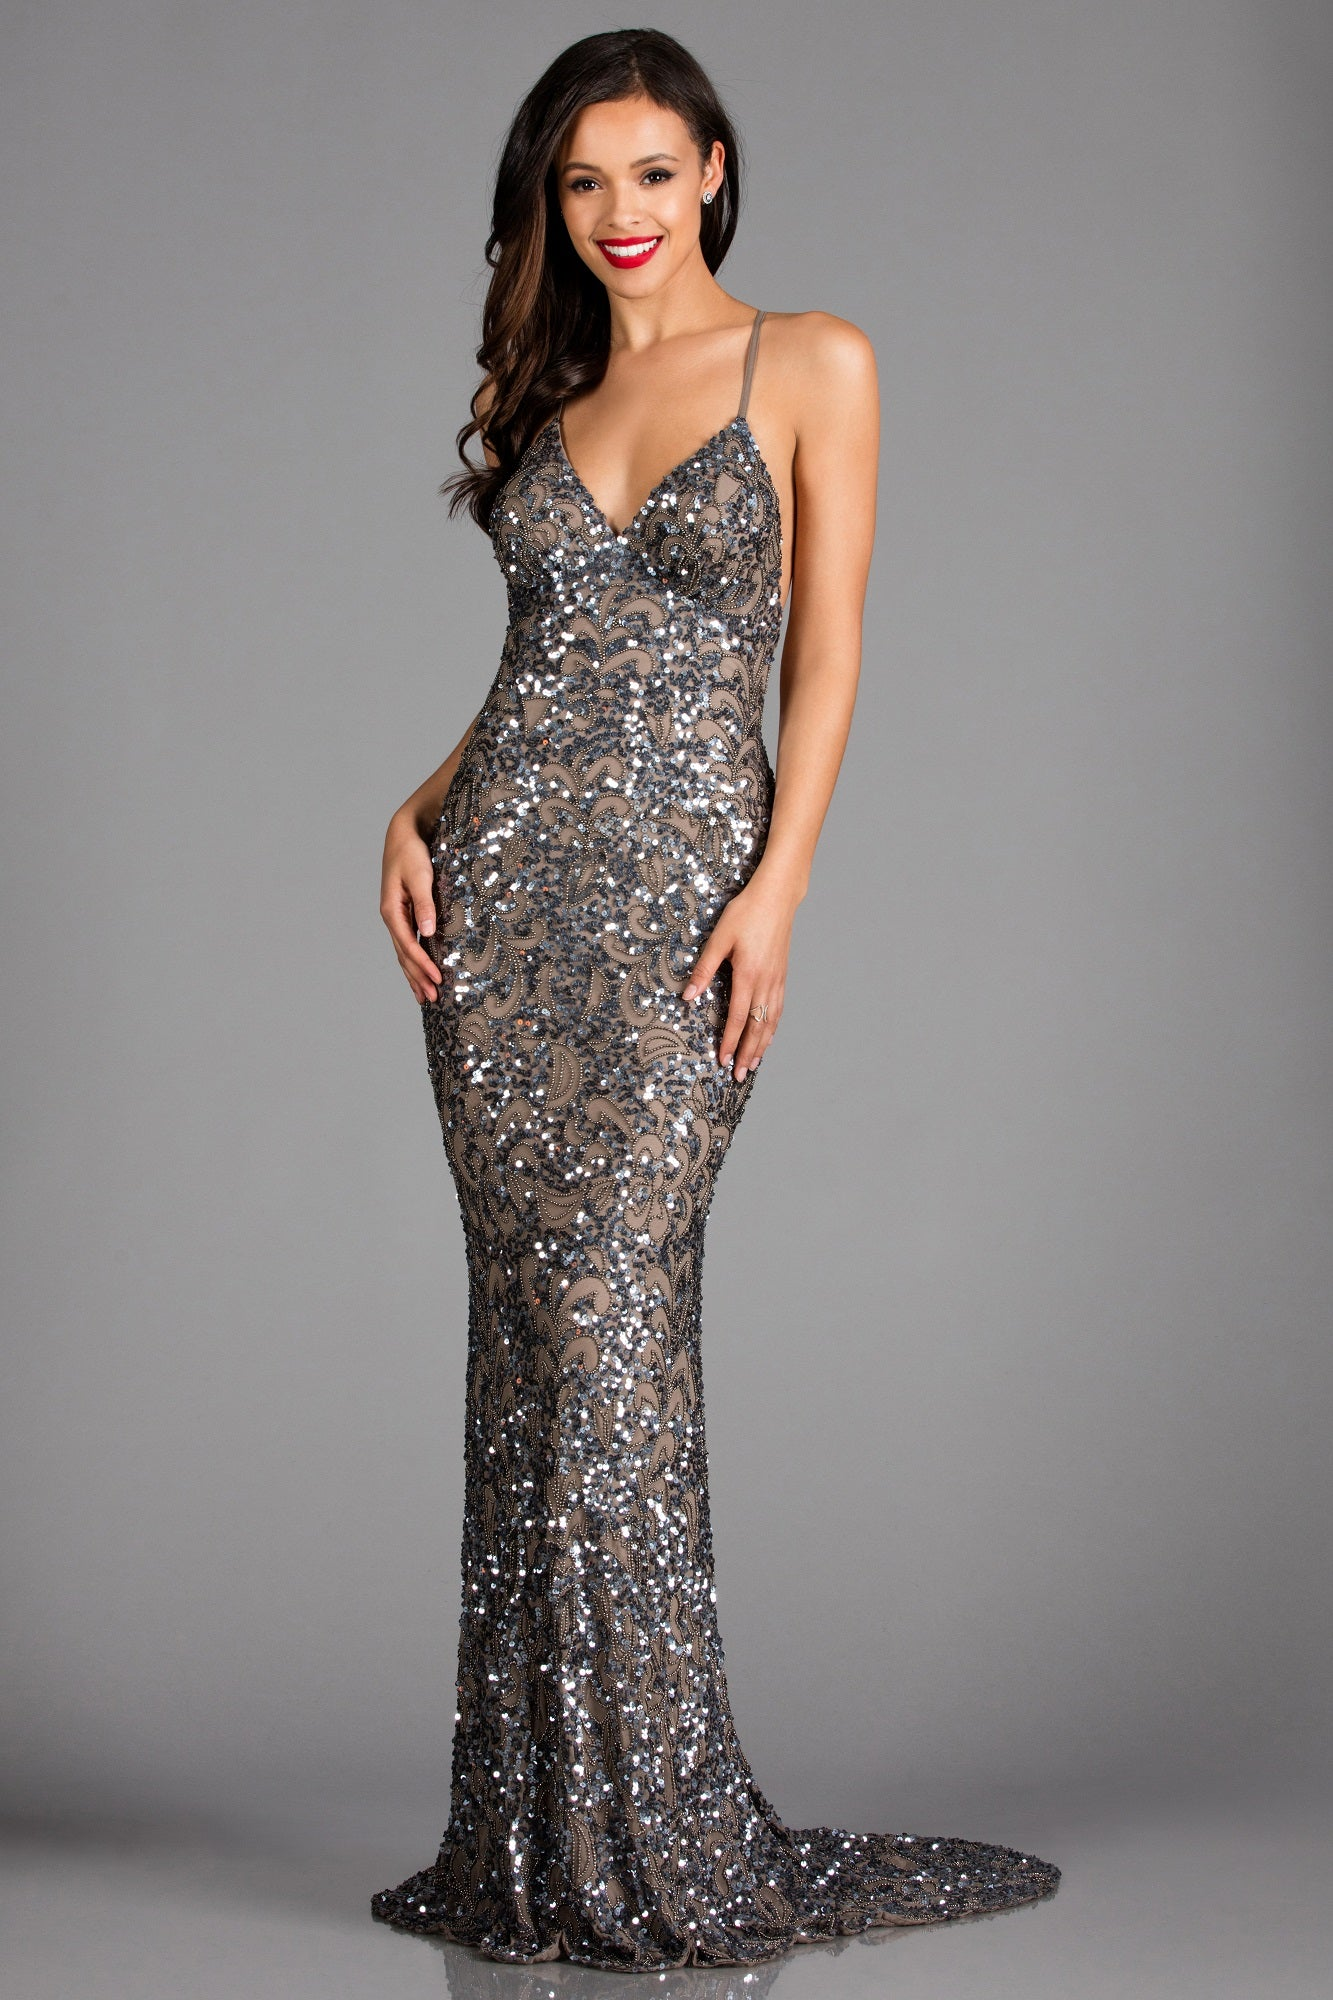 Scala 47542 silver beaded low back dress